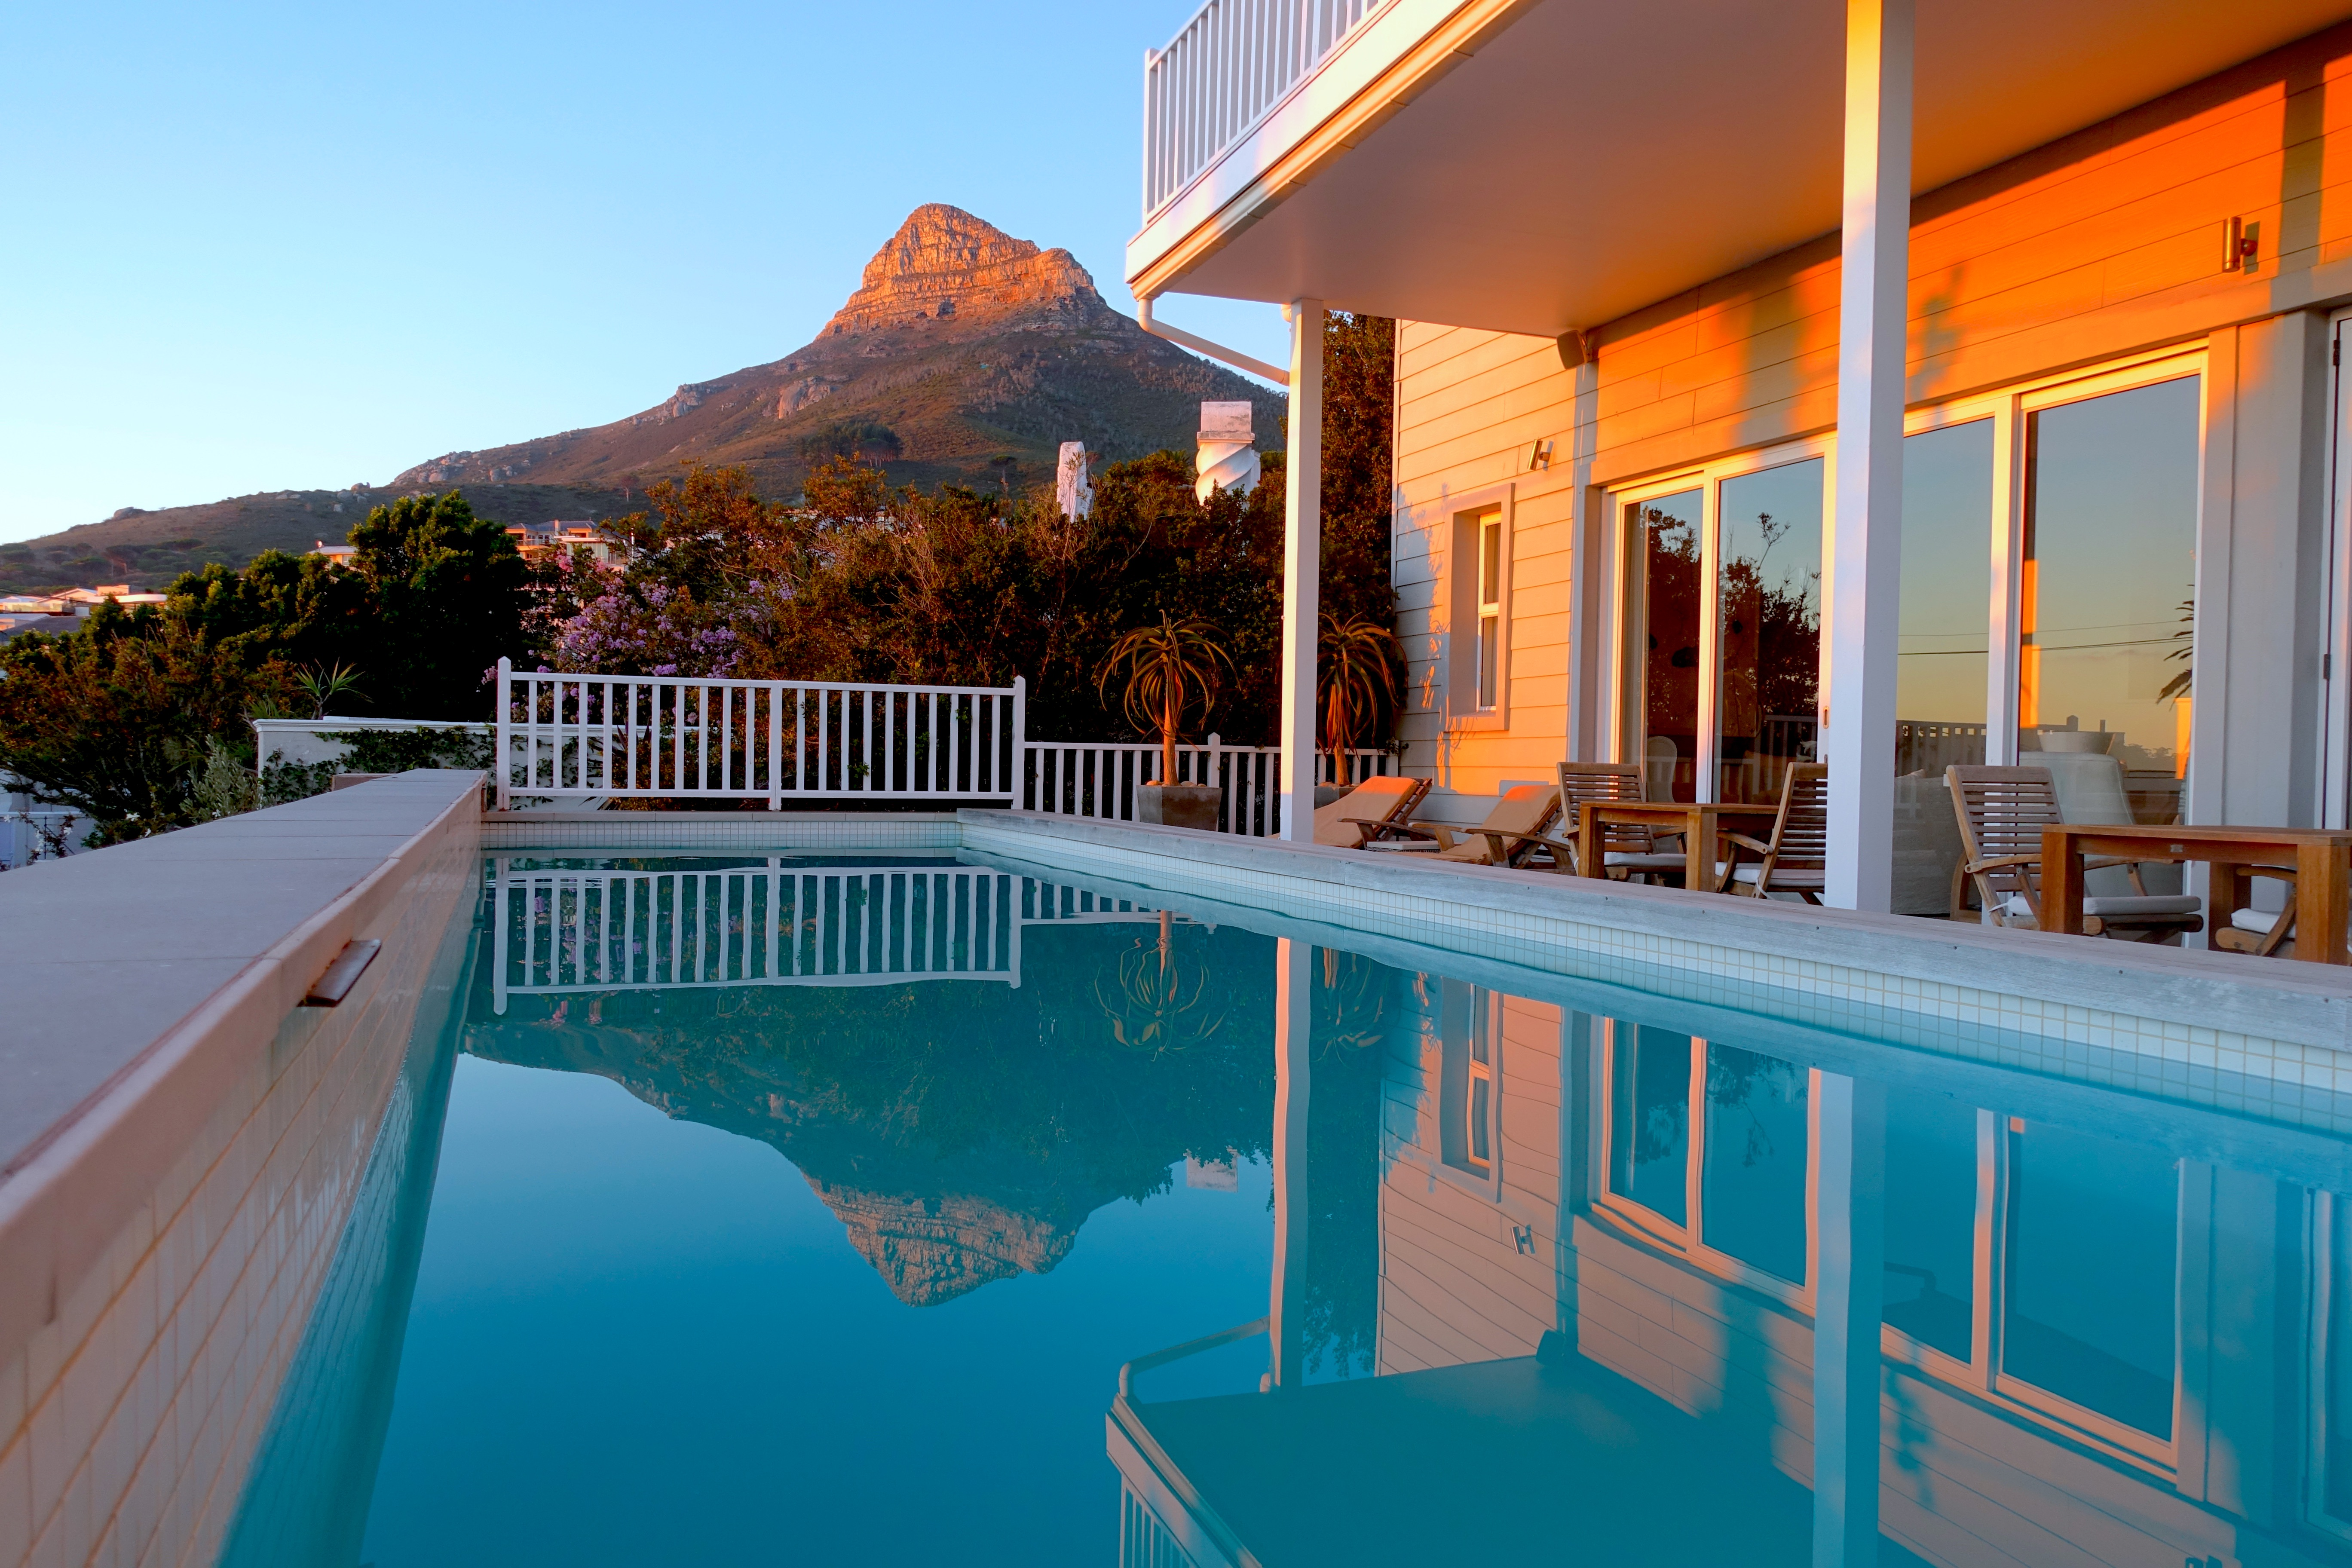 seafivehotel-capetown-southafrica-lustforthesublime